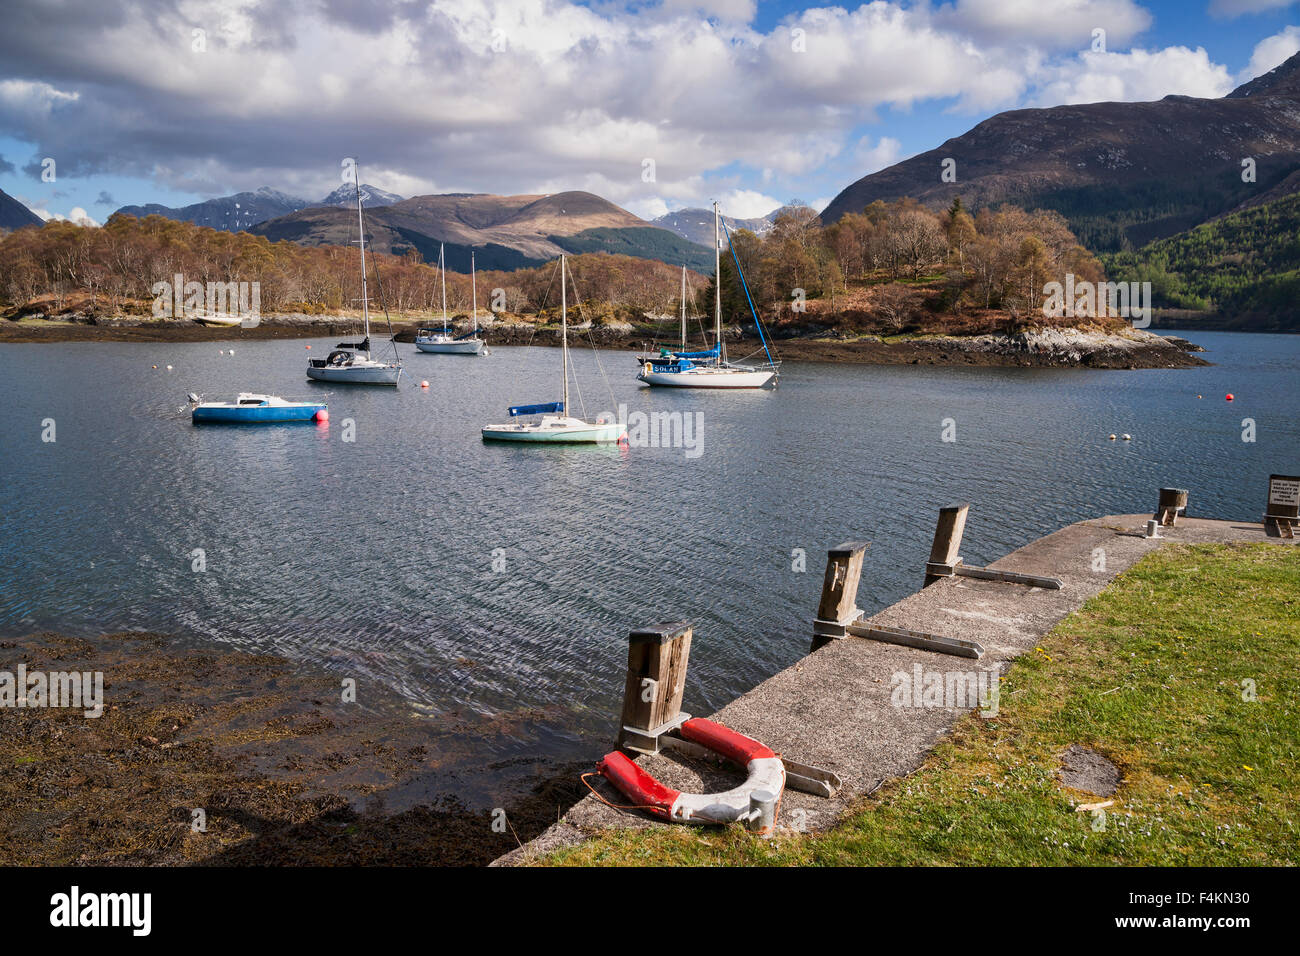 Loch Leven at North Ballachulish, Glencoe mountains, Highland,  Scotland, UK - Stock Image